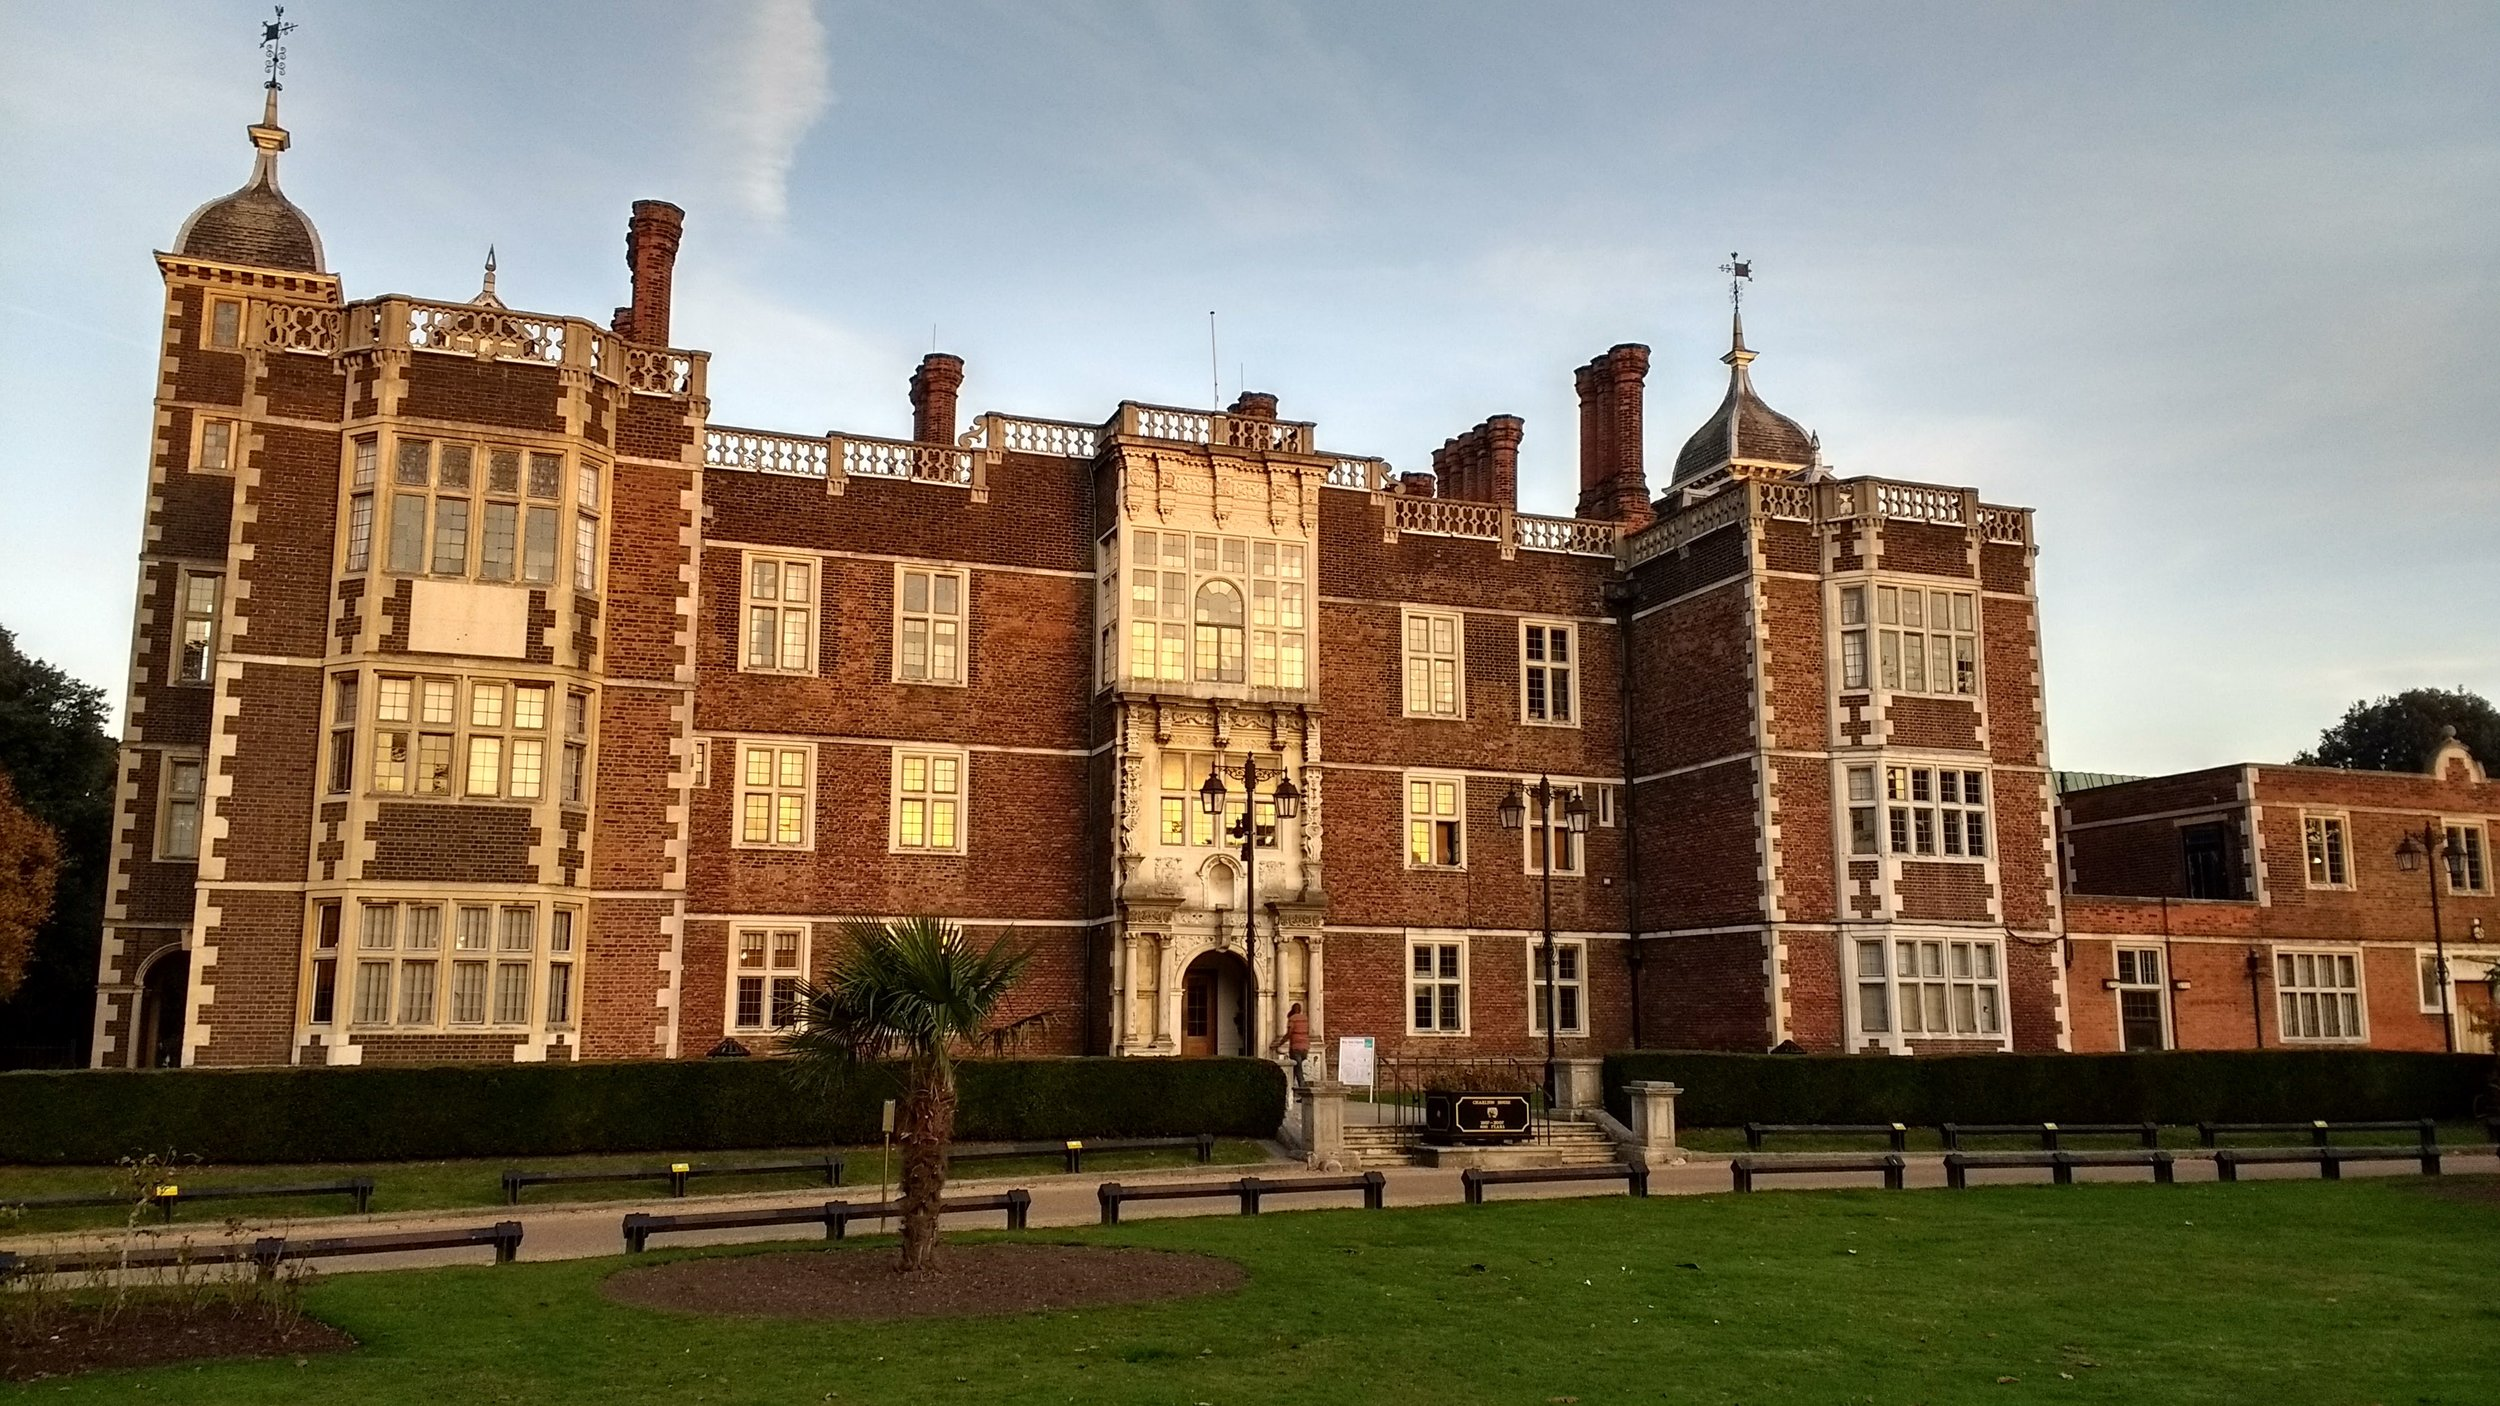 Charlton House - Charlton House is a 400-year manor house, described as